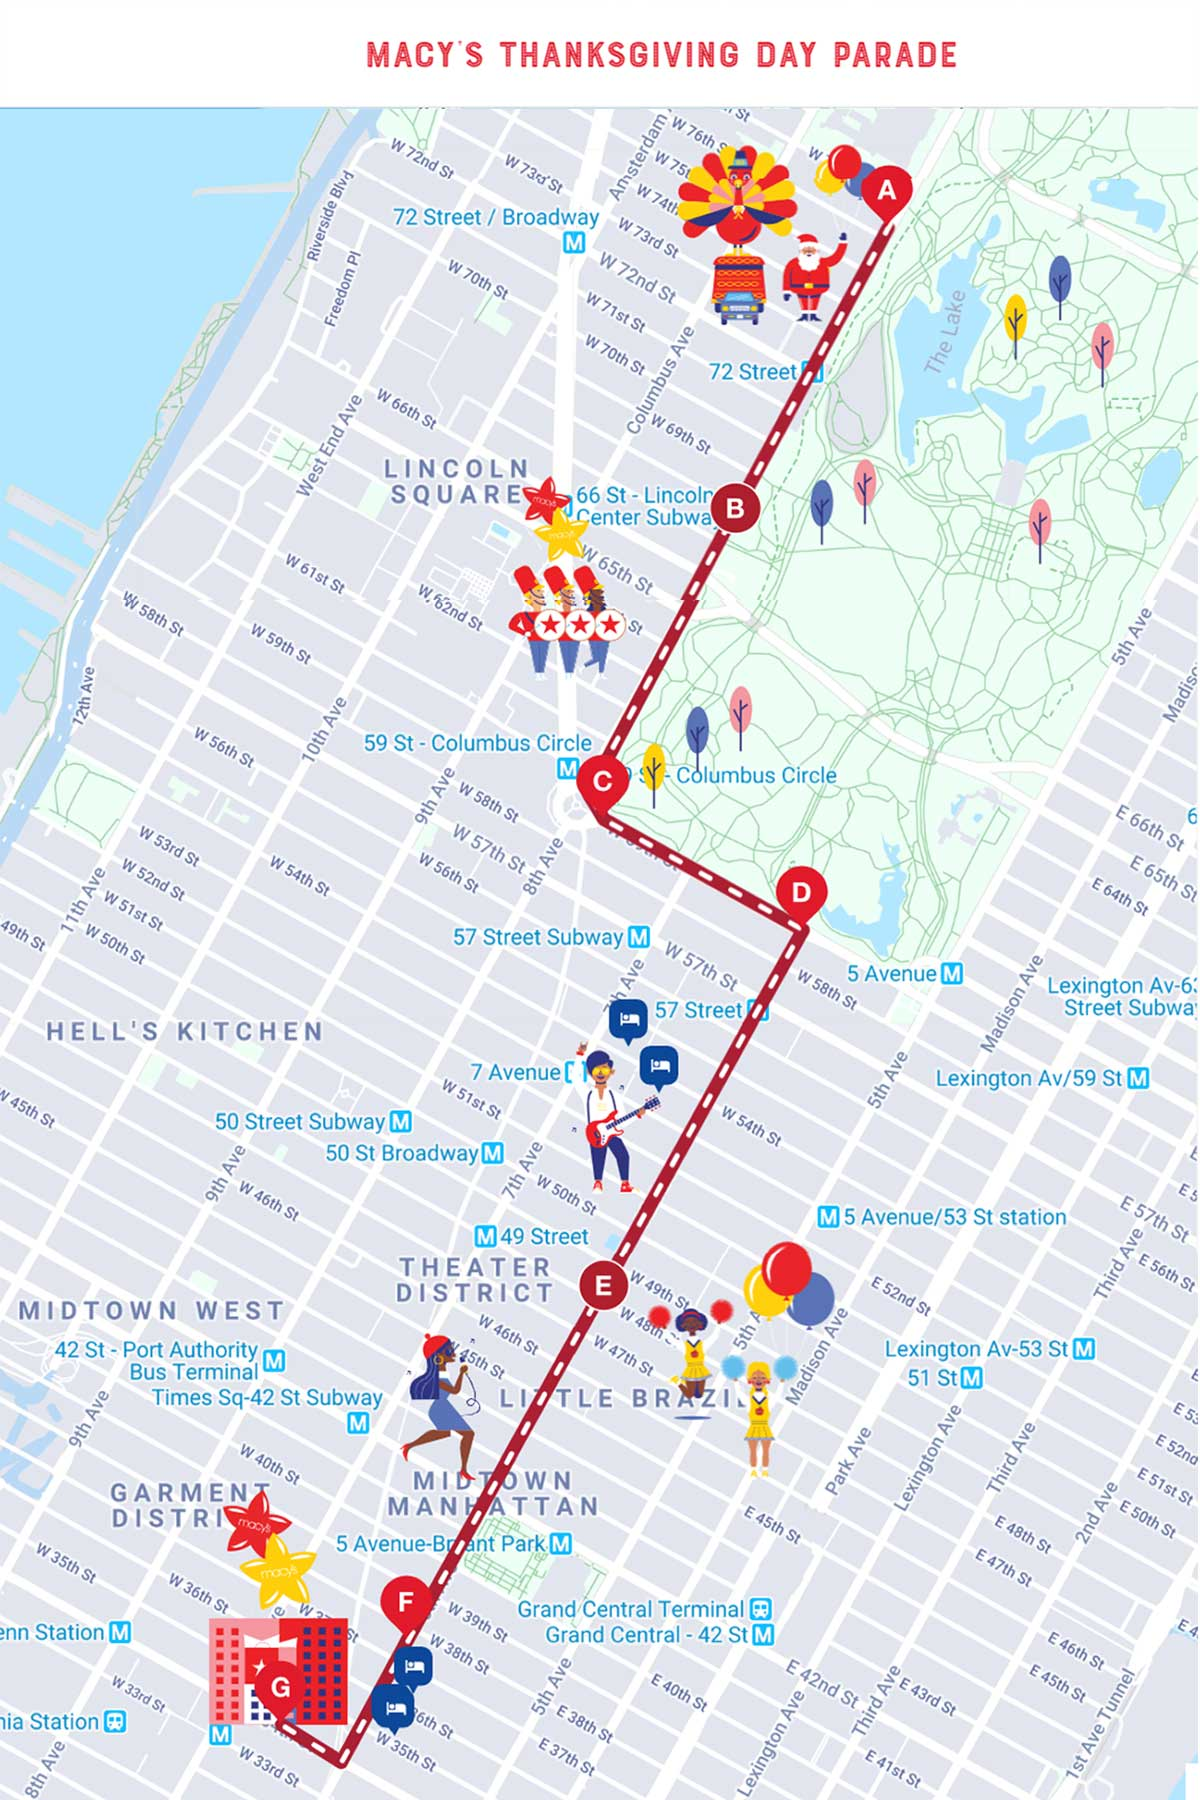 Macys-Thanksgiving-Parade-Route